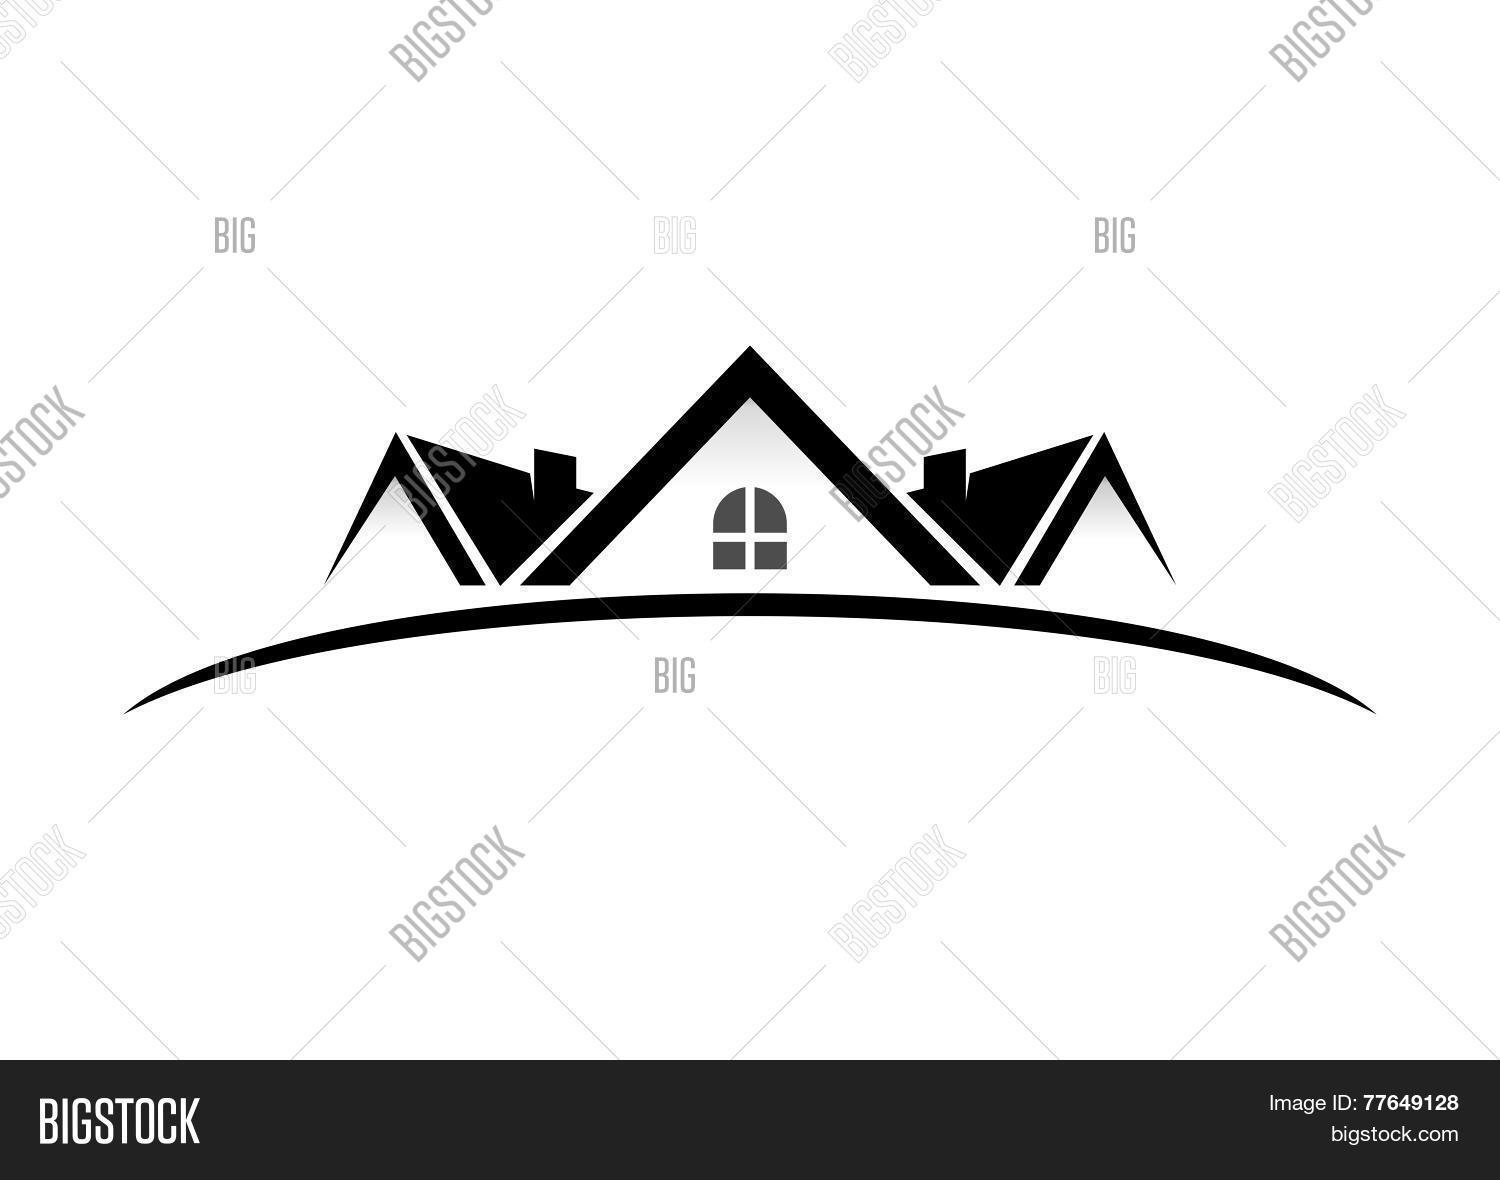 Real Eatate Home Vector Logo amp Photo Bigstock